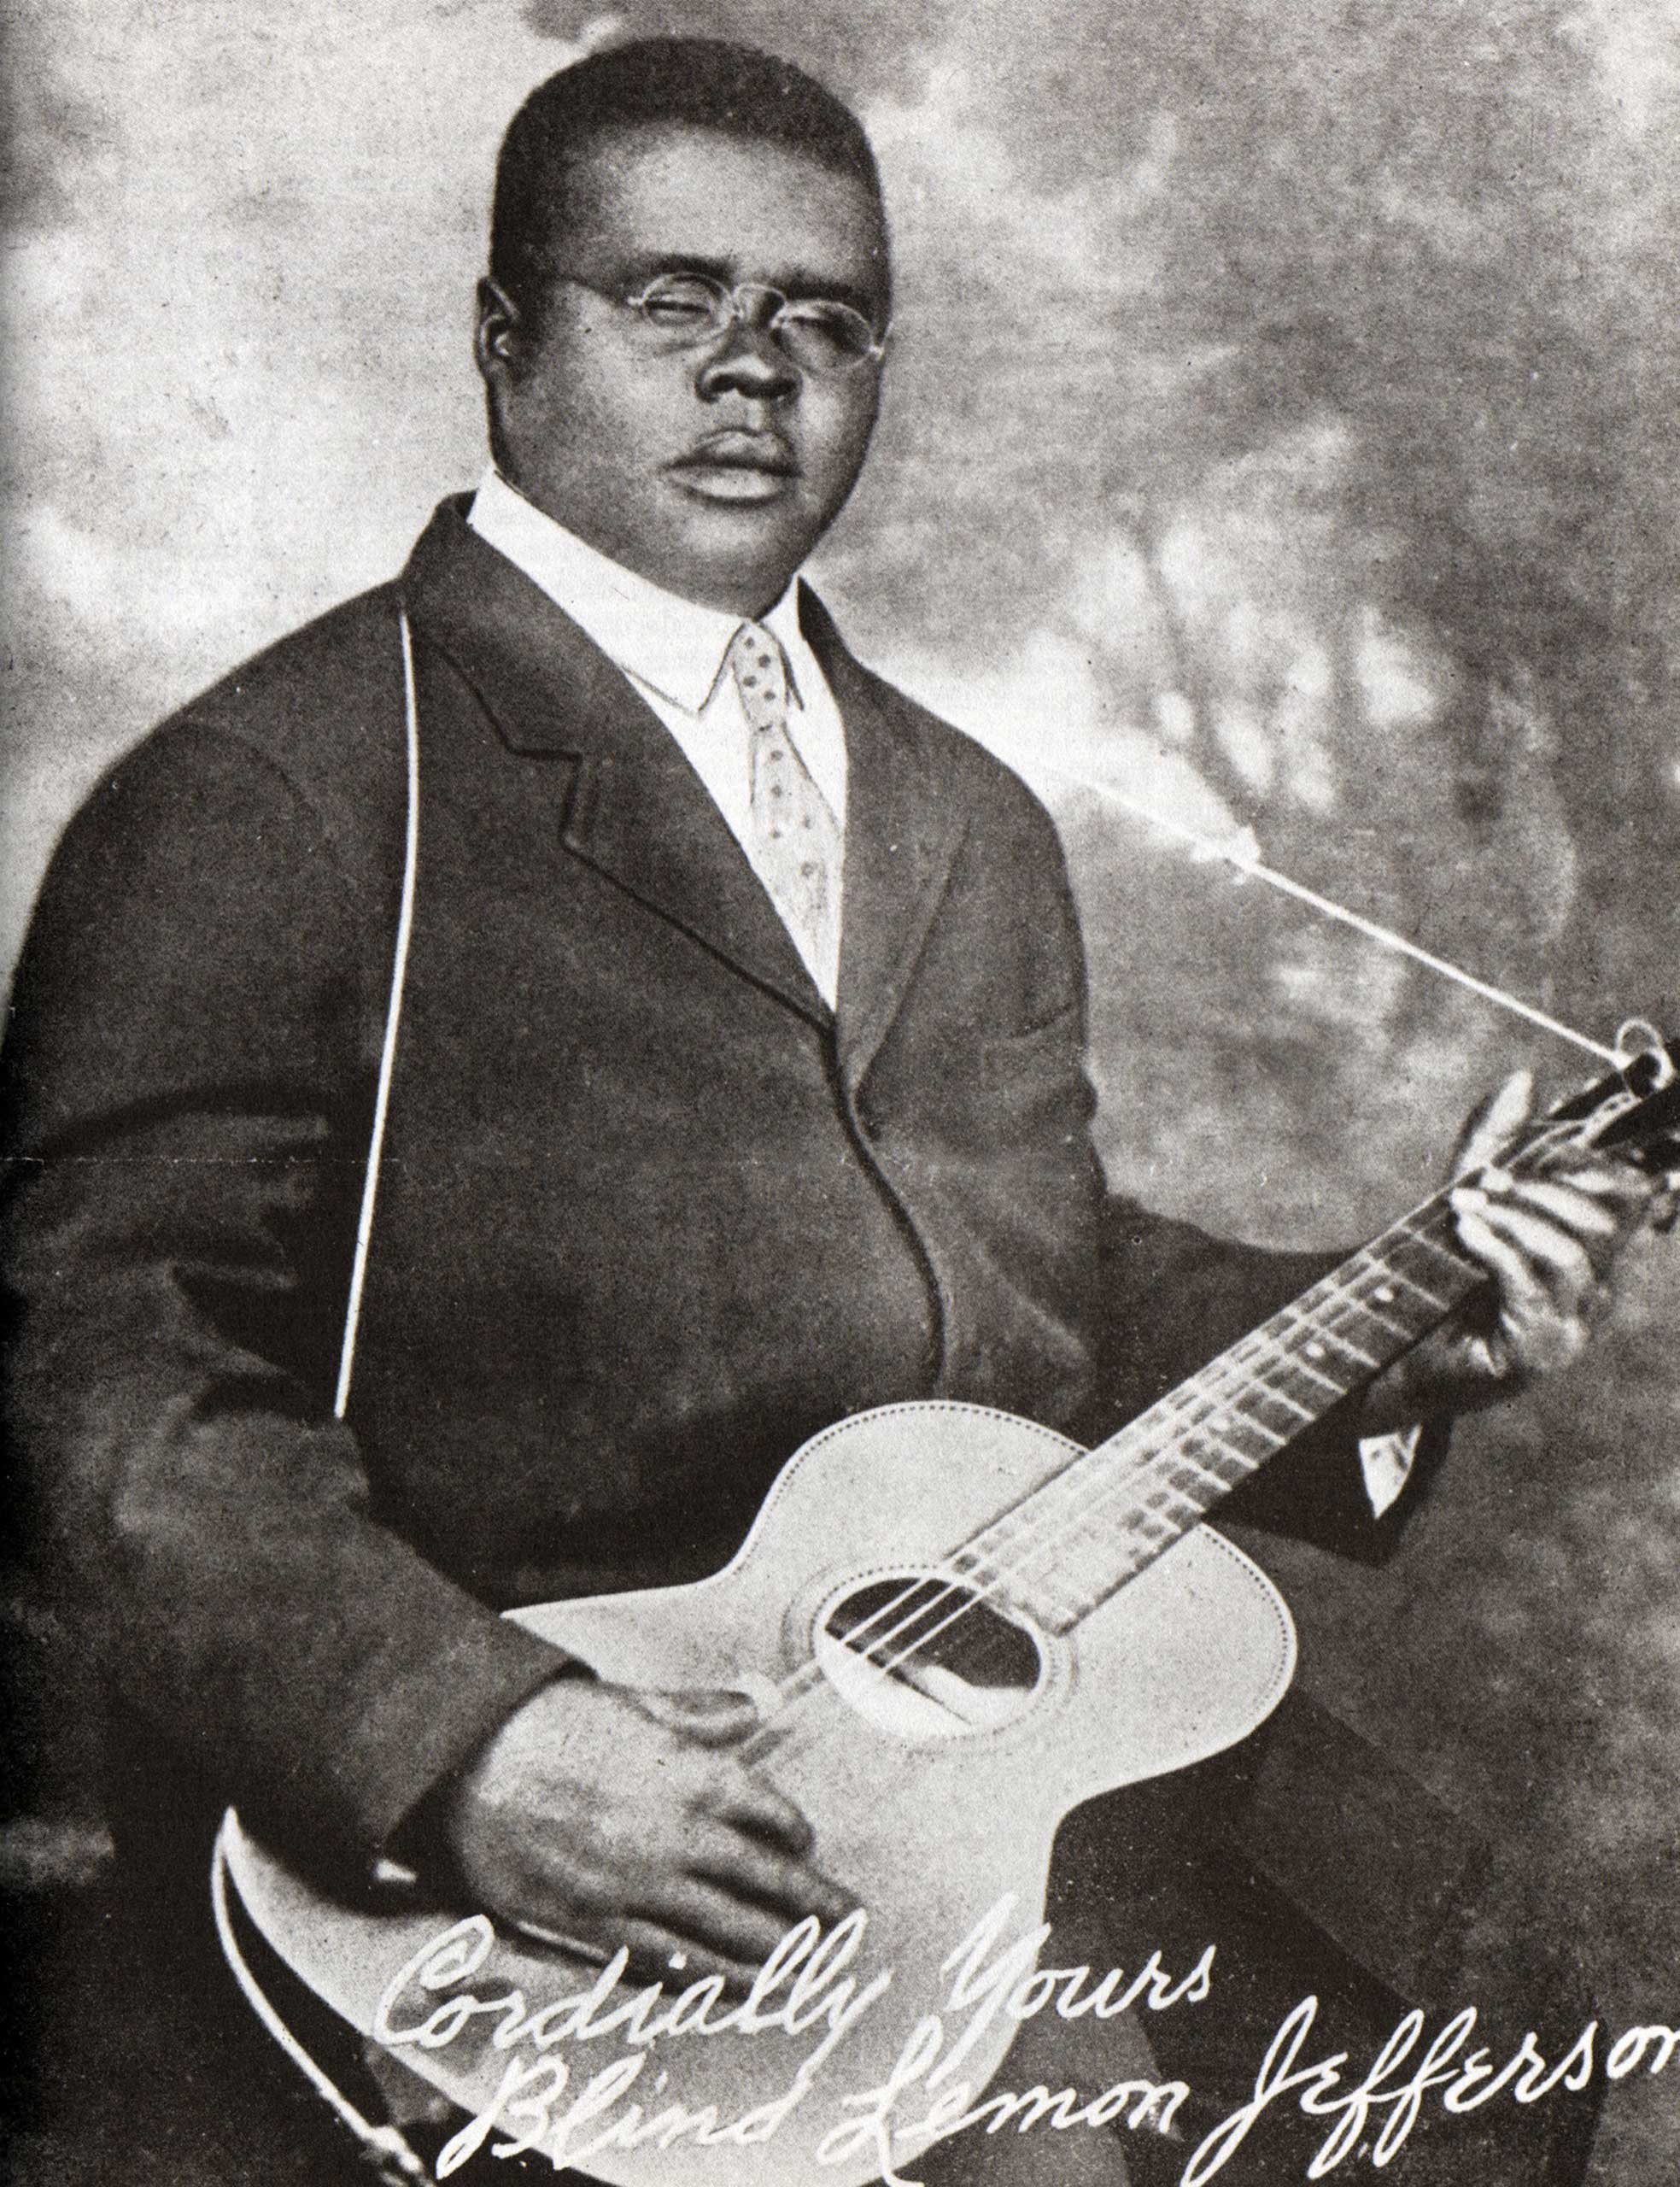 """Blind Lemon Jefferson's rural style of the blues, captured on a 1928 single """"Black Snake Moan"""" / """"Match Box Blues"""" was influential in broadening the genre. (GAB Archive/Redferns/Getty Images)"""